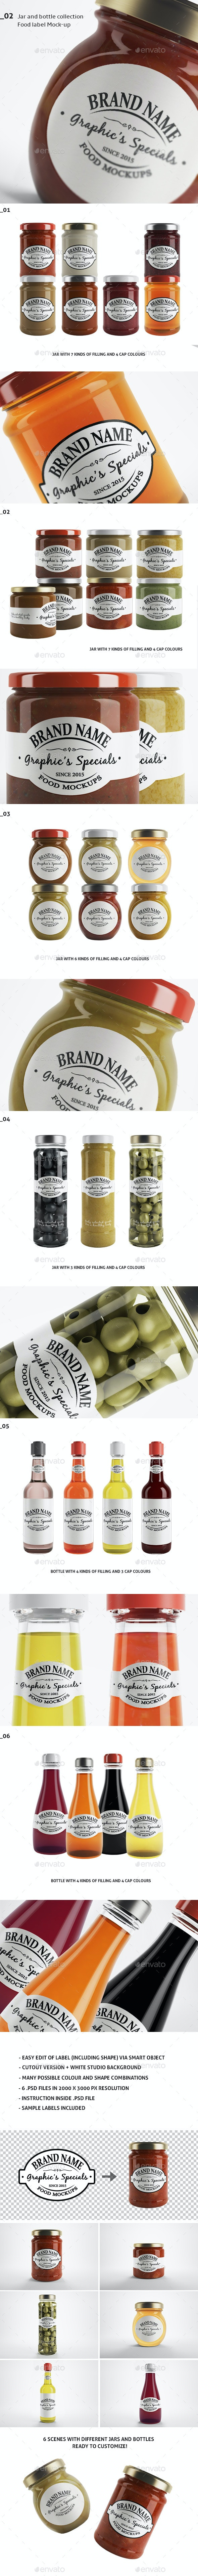 Jar/Bottle Mockups - Food and Drink Packaging